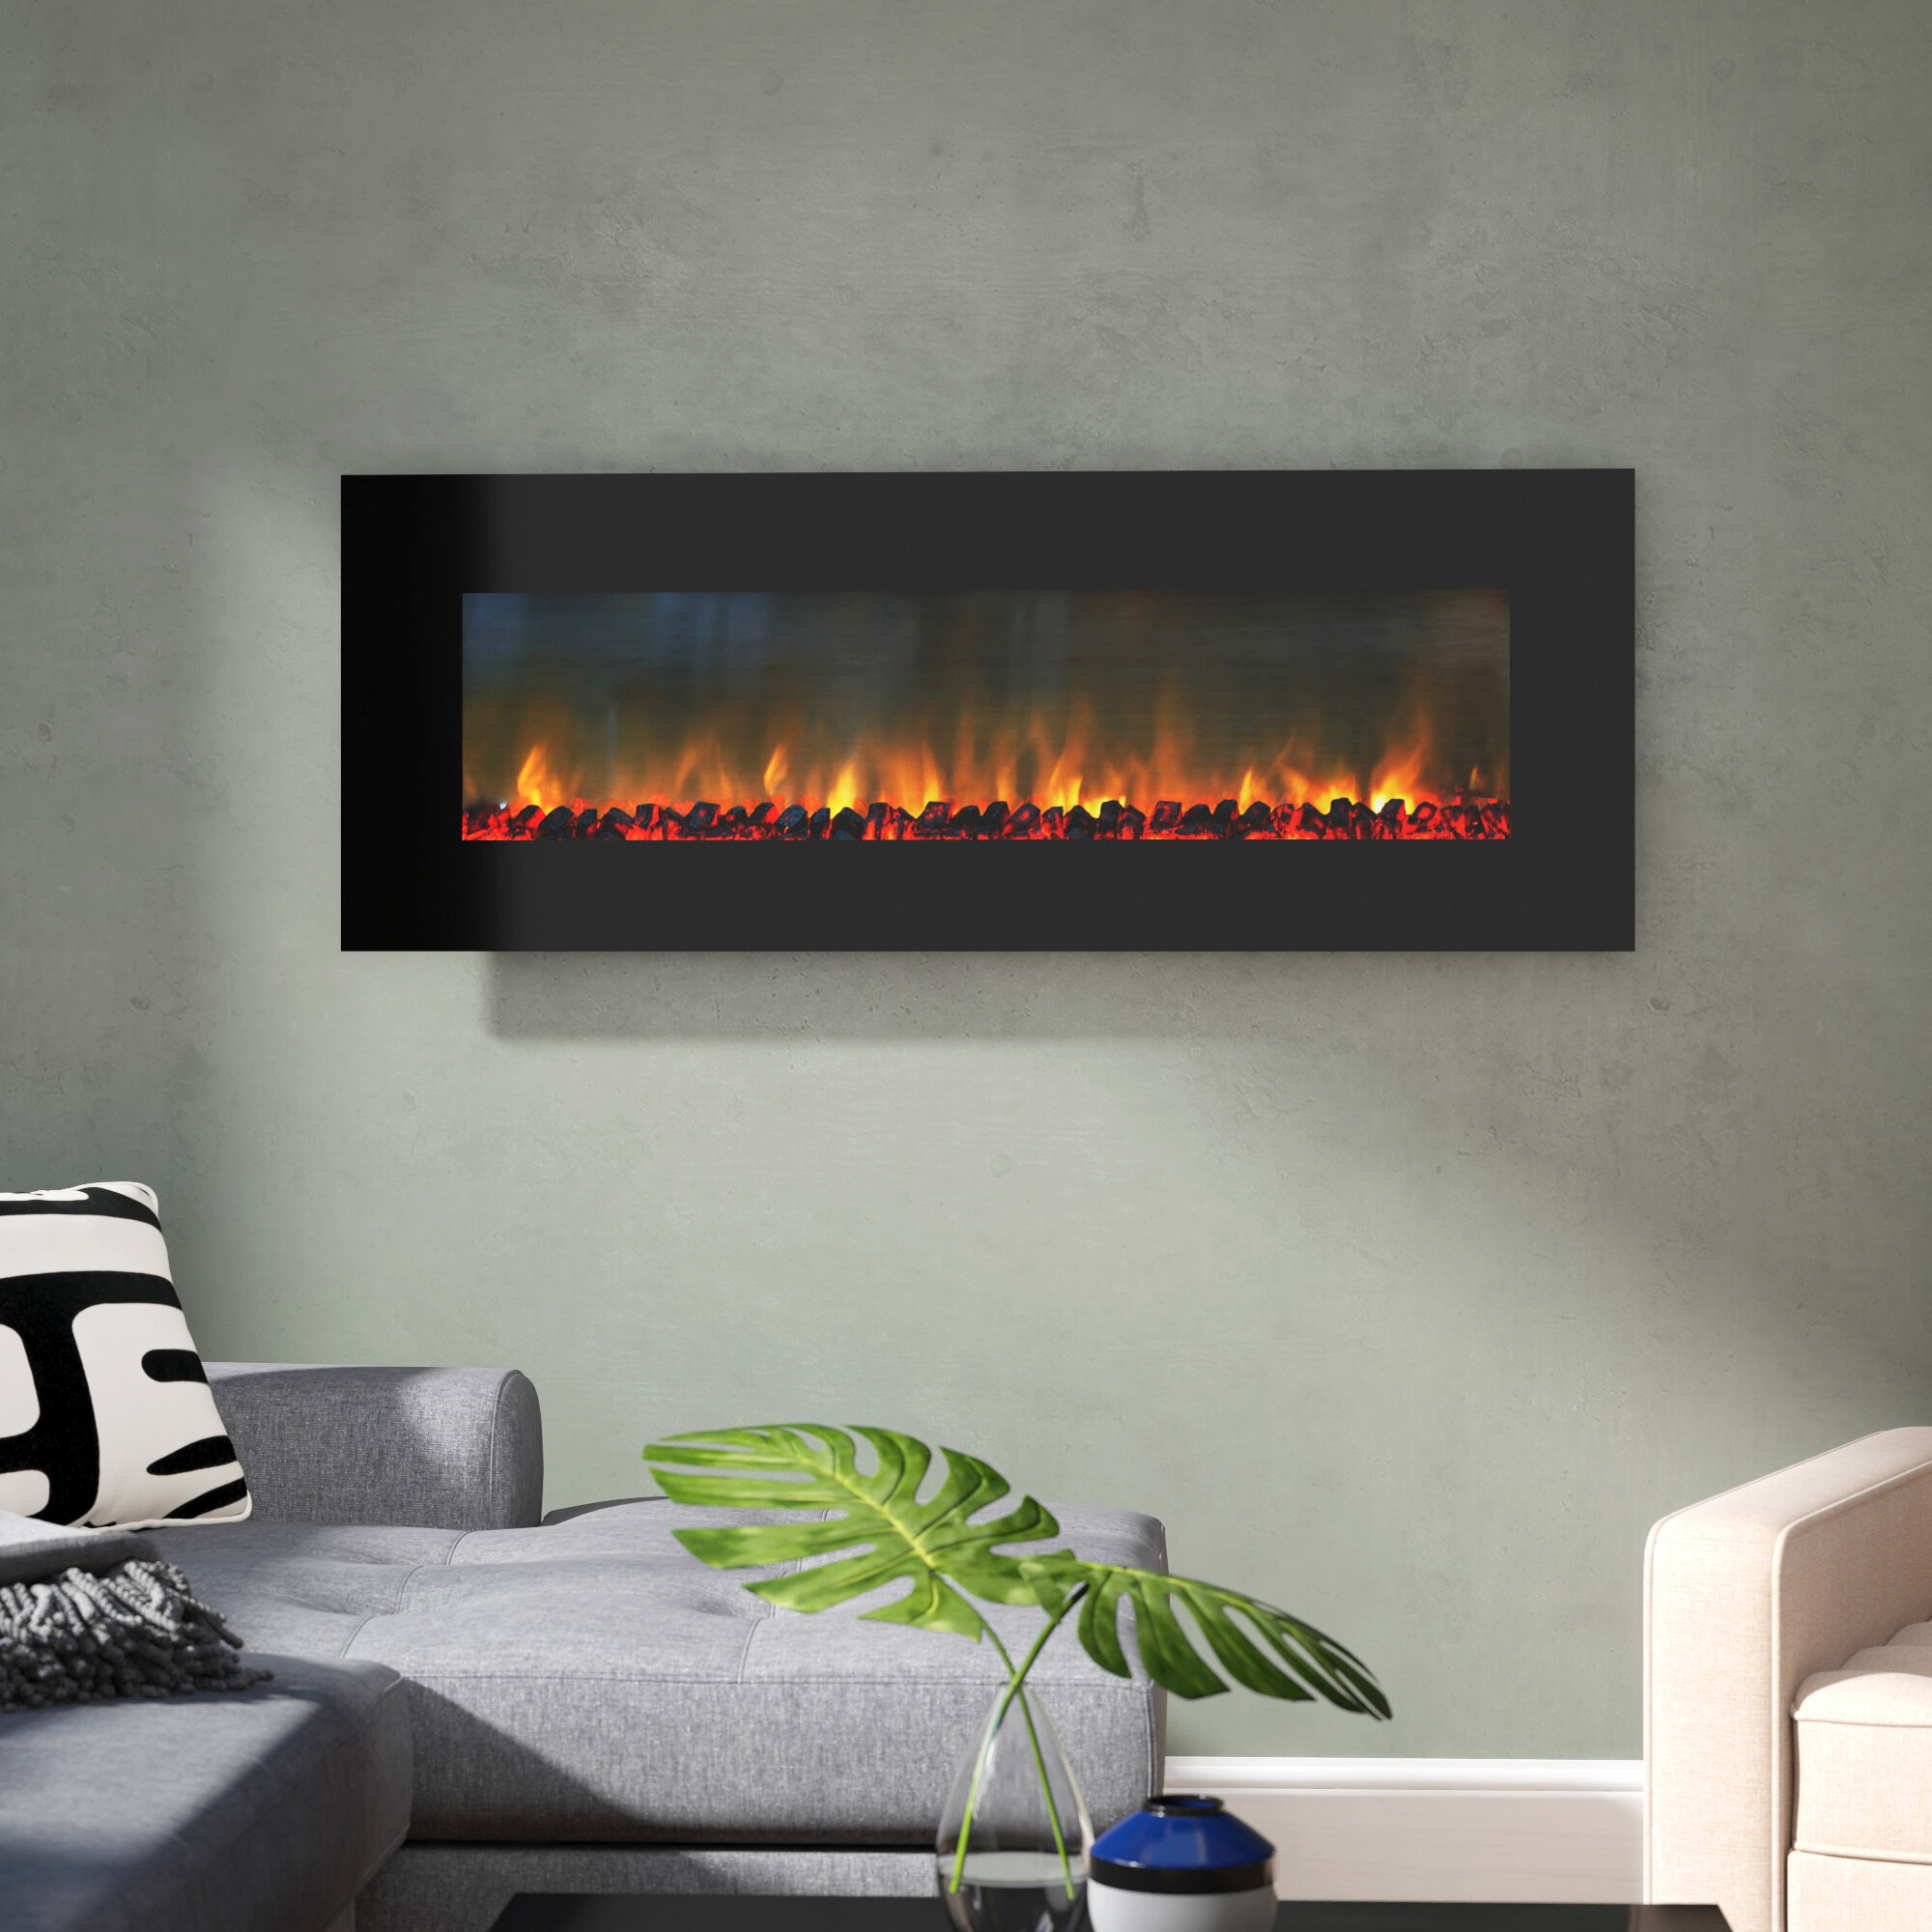 Orren Ellis Quevedo Wall Mounted Electric Fireplace Reviews Wayfair